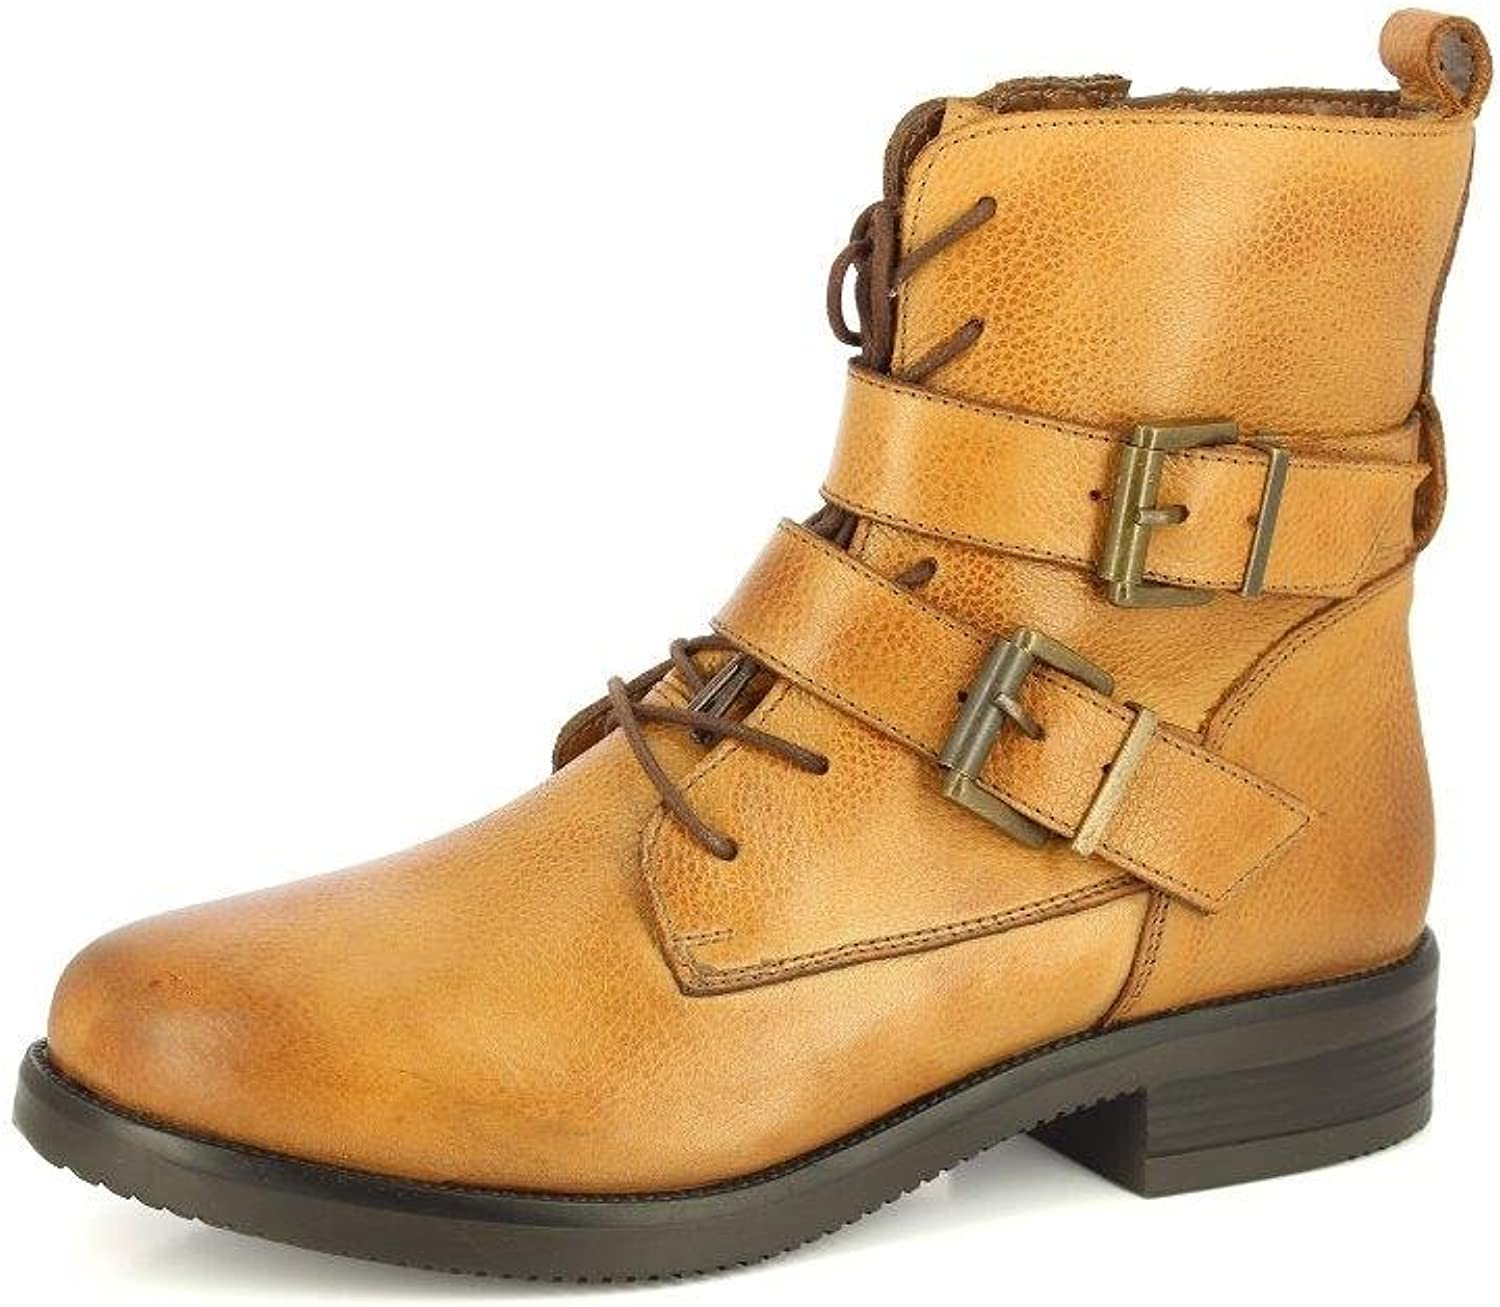 ALBERTO TORRESI Women's Leather Boots Double Buckle Strap Stacked Ankle Bootsie